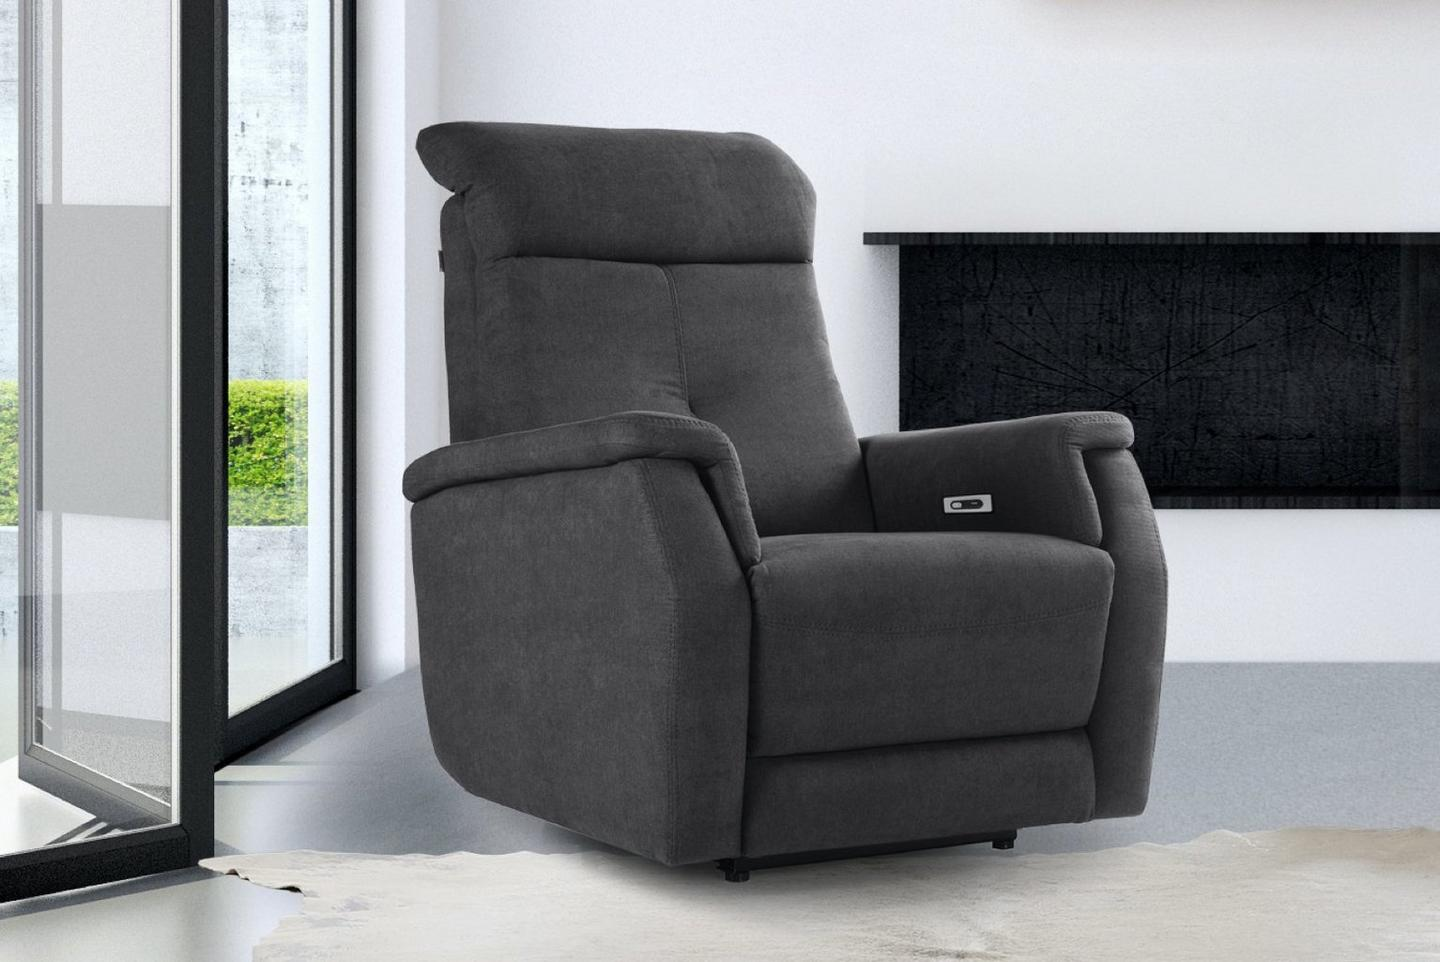 Altamura Recliner Chair